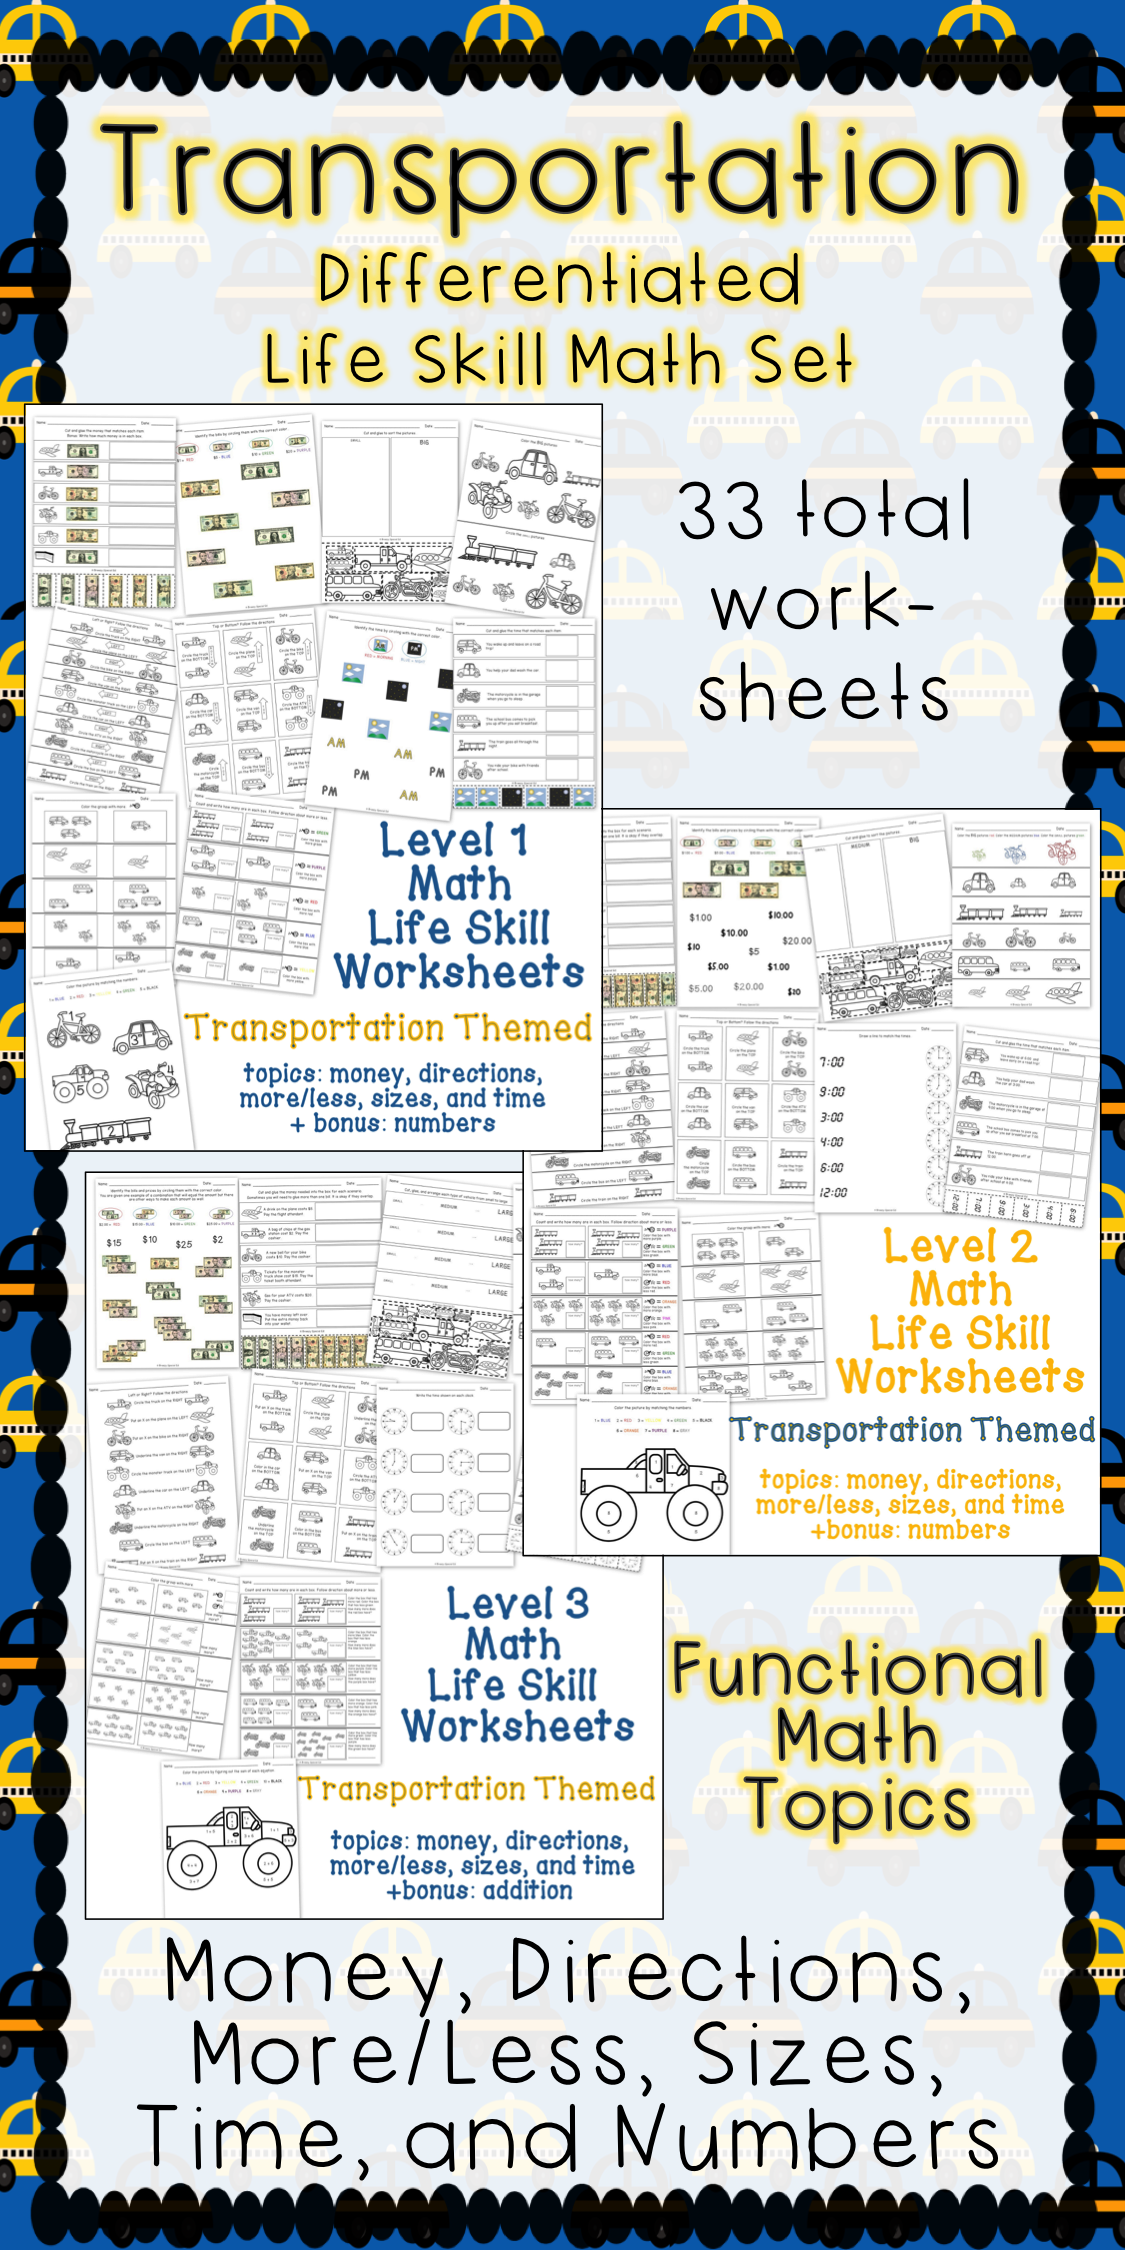 Life Skill Math Worksheets On A Variety Of Topics That Are